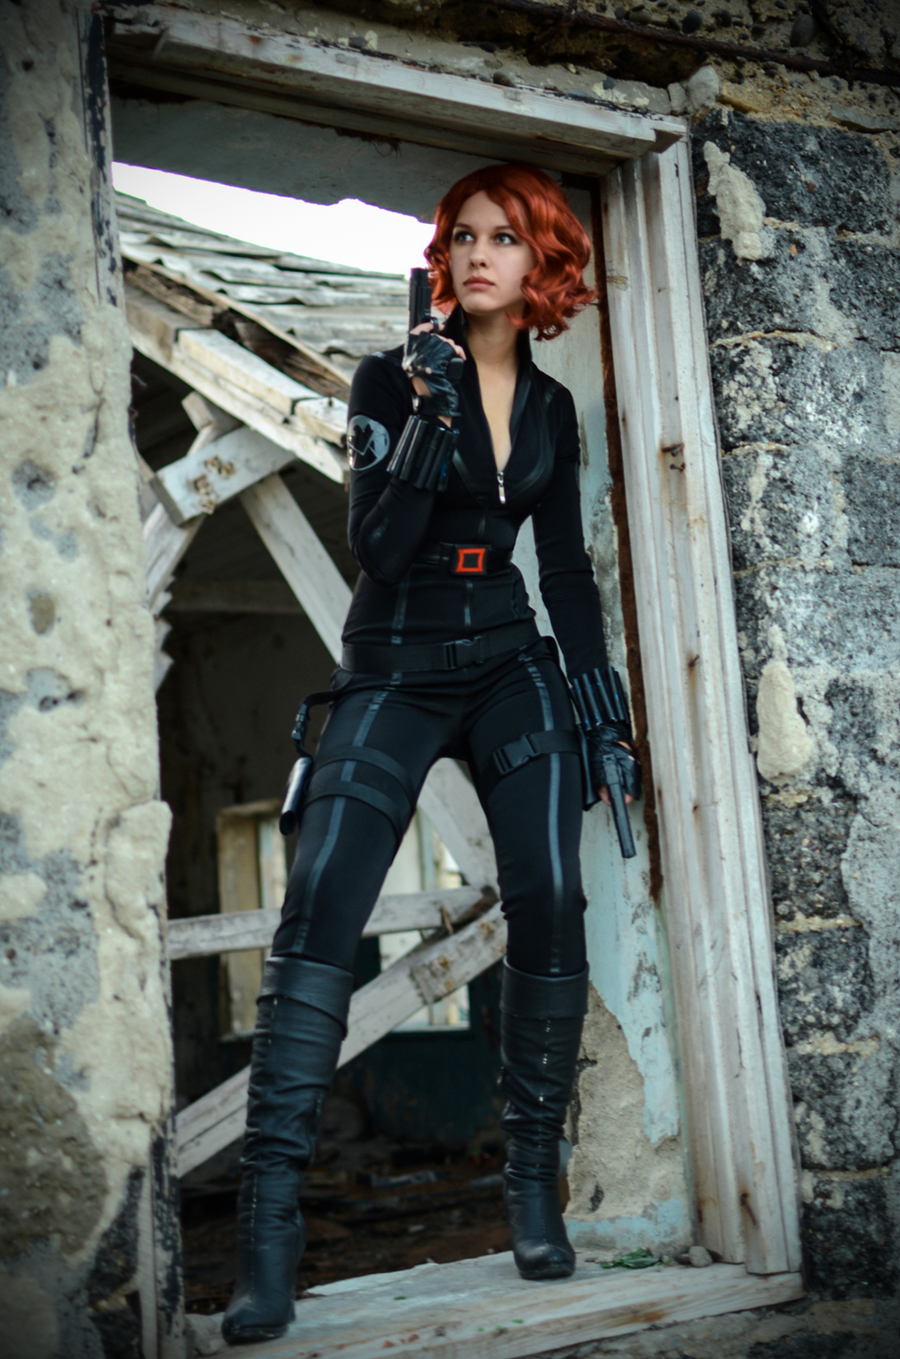 Natasha Romanov photoshoot test by Karenscarlet